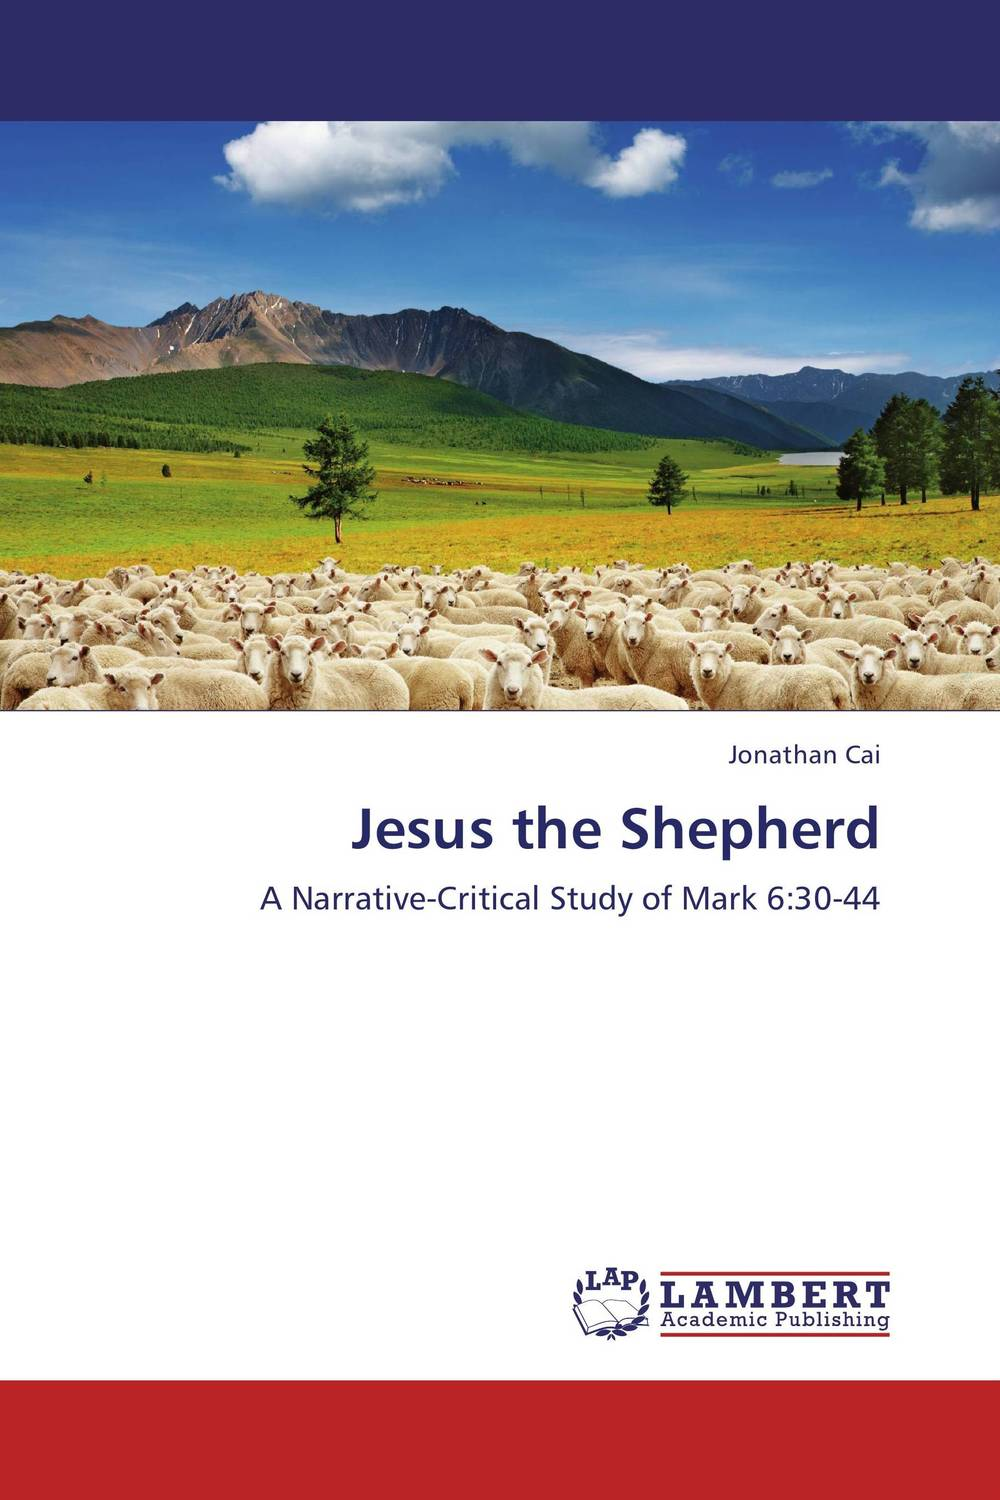 Jesus the Shepherd robots and the whole technology story